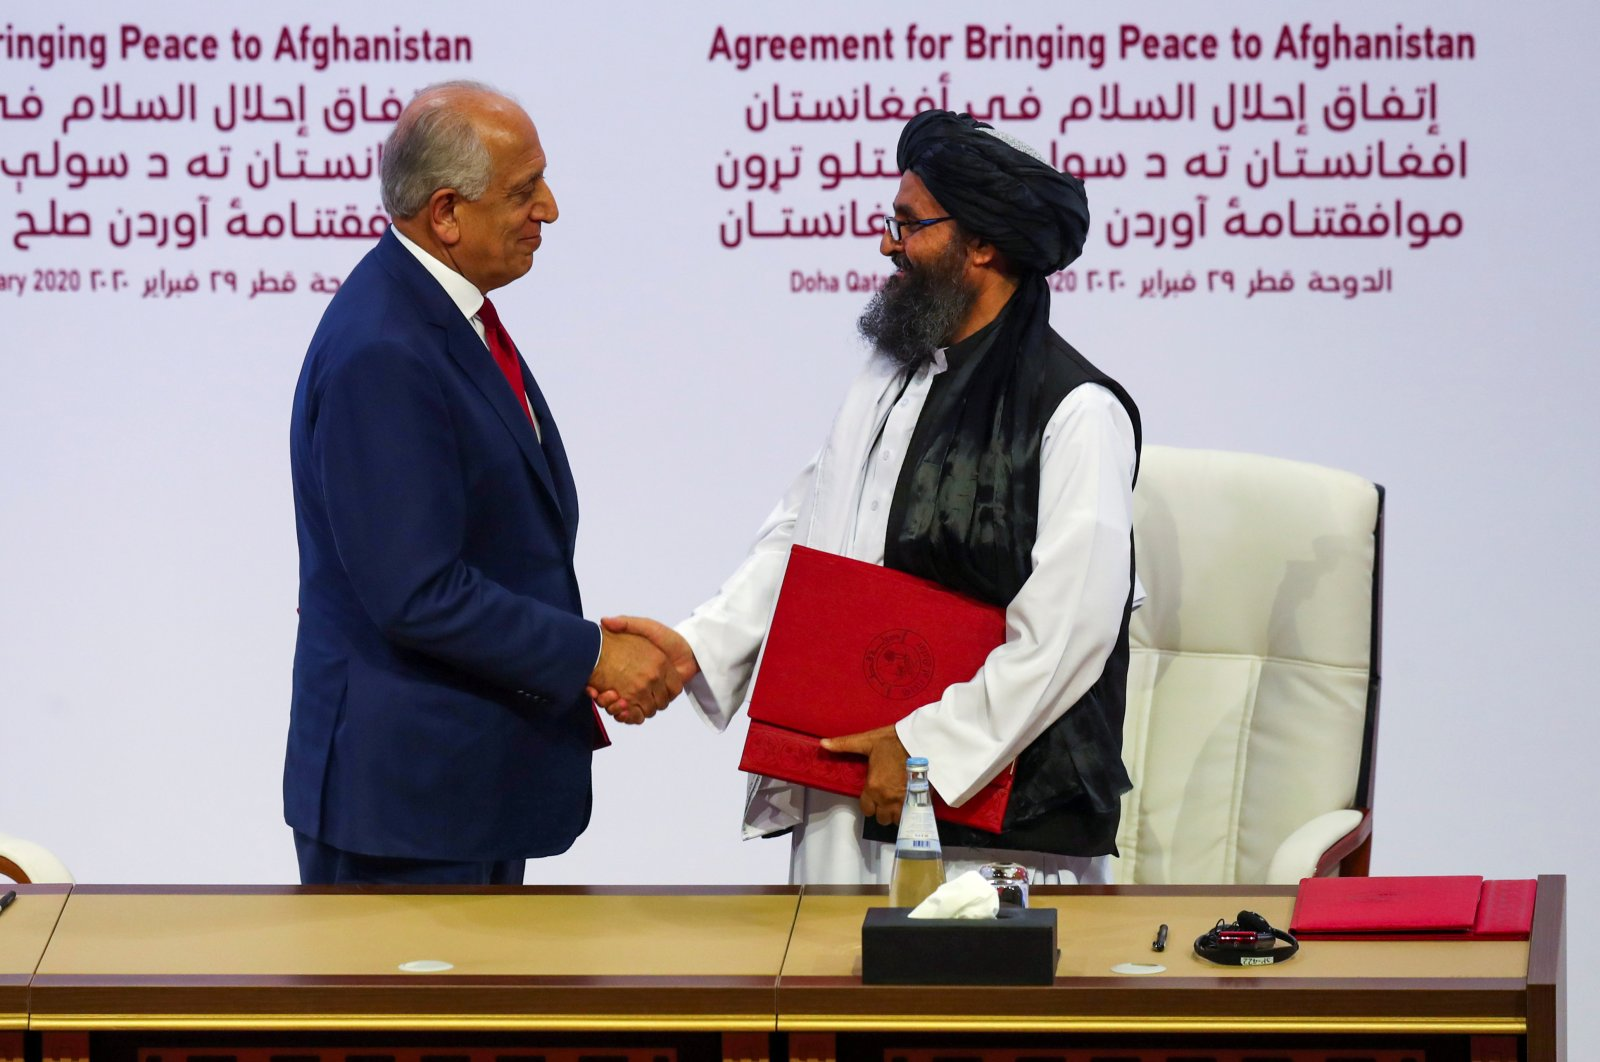 Mullah Abdul Ghani Baradar, the leader of the Taliban delegation, and Zalmay Khalilzad, U.S. envoy for peace in Afghanistan, shake hands after signing an agreement at a ceremony between members of Afghanistan's Taliban and the U.S., Doha, Feb. 29, 2020. (REUTERS Photo)